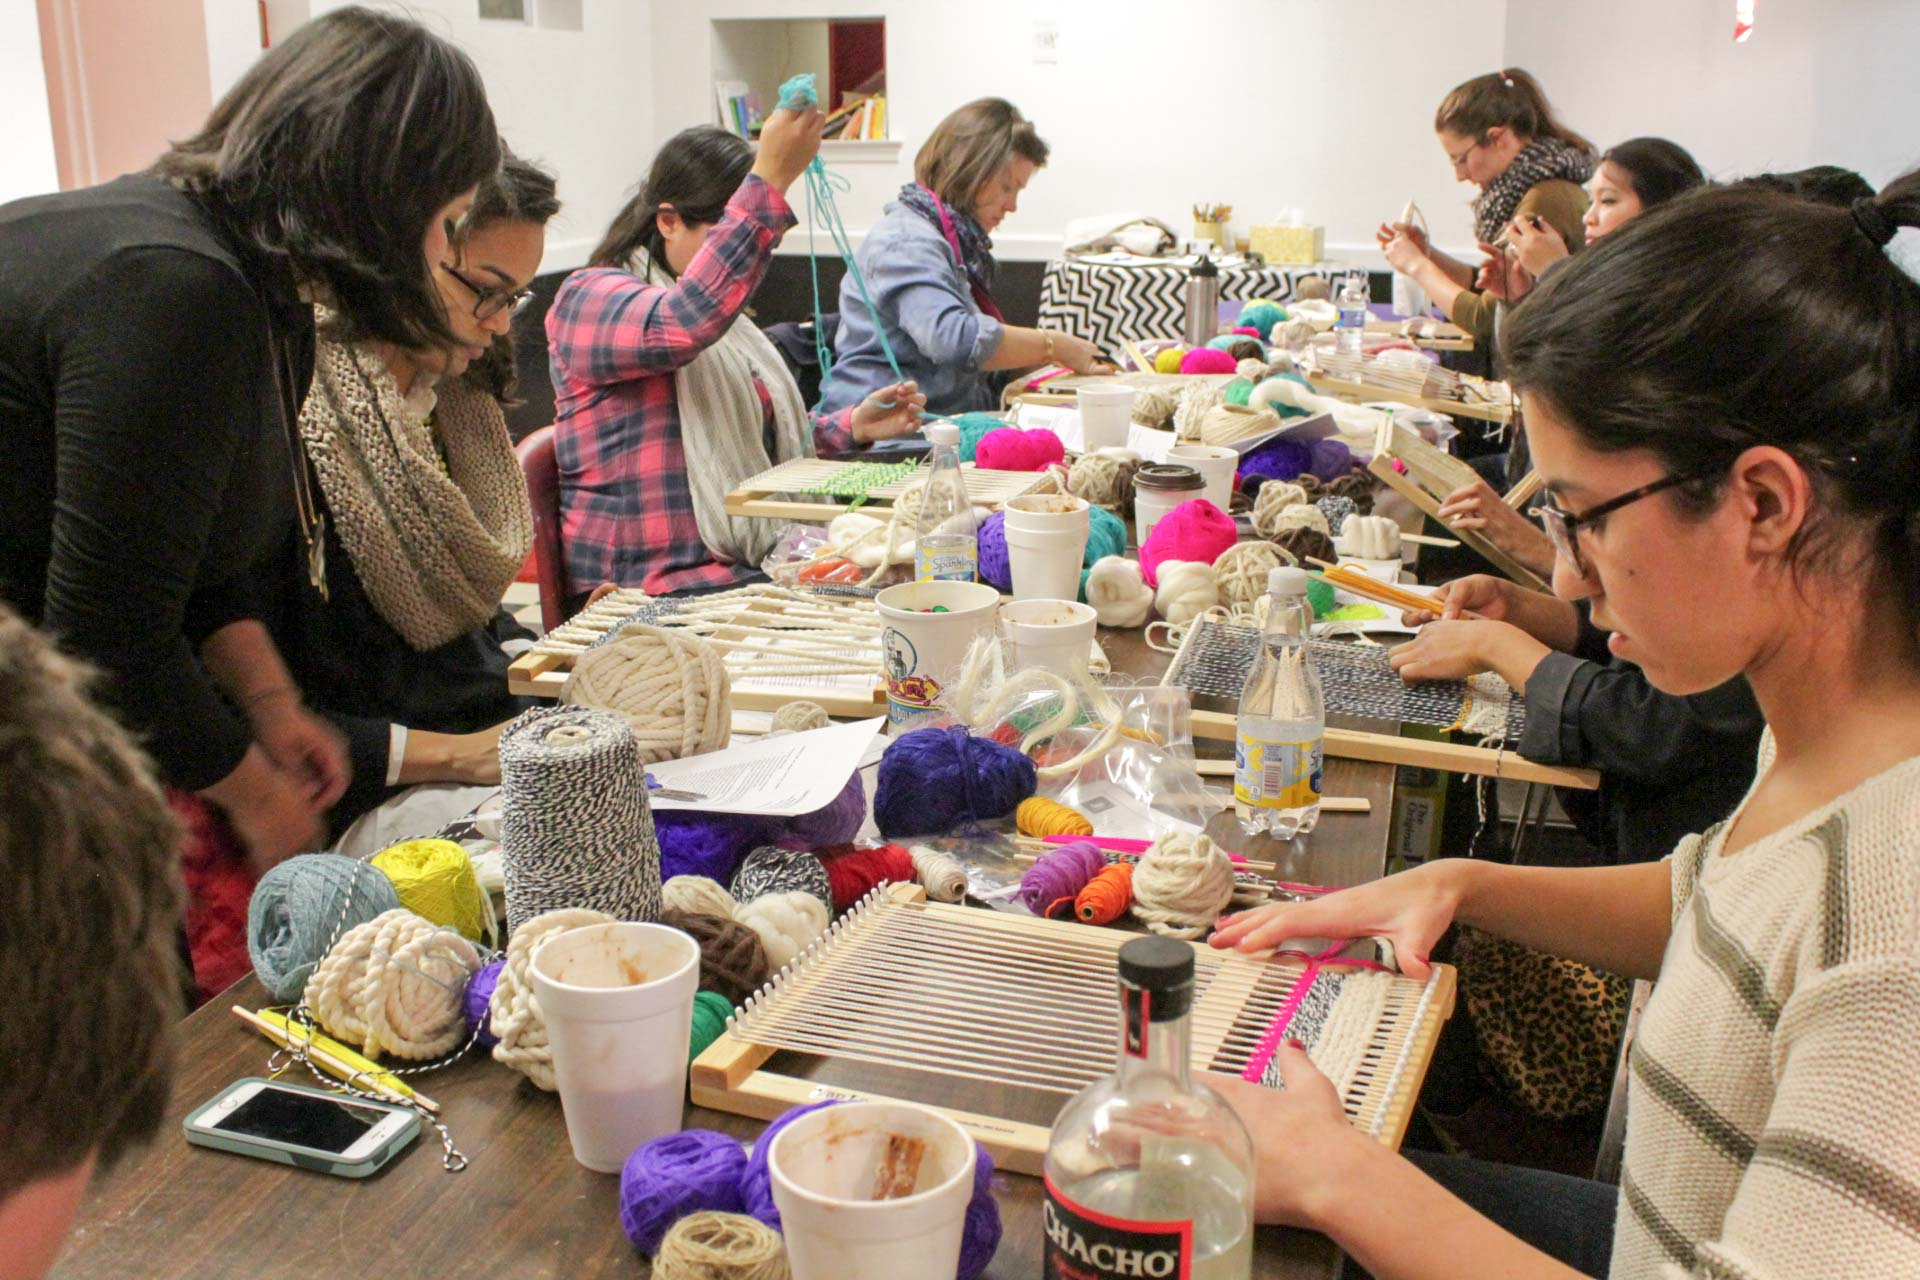 2-2016-mexican-hot-chocolate-tapestry-weaving (44 of 59).jpg